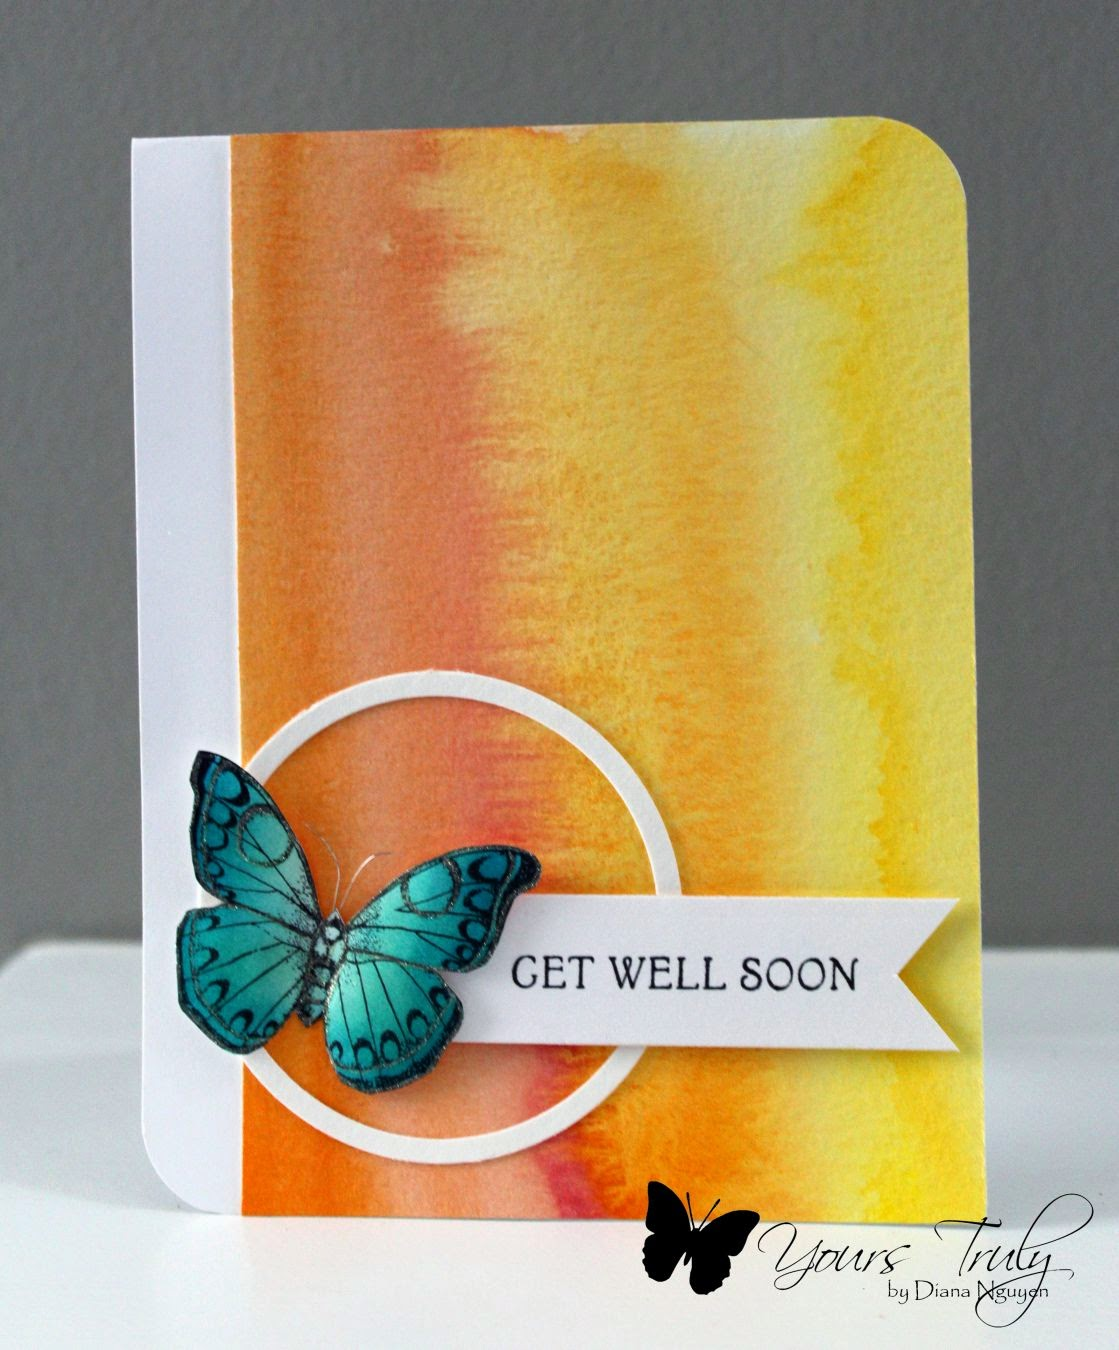 Hero Arts, butterfly, card, Diana Nguyen, watercolor background